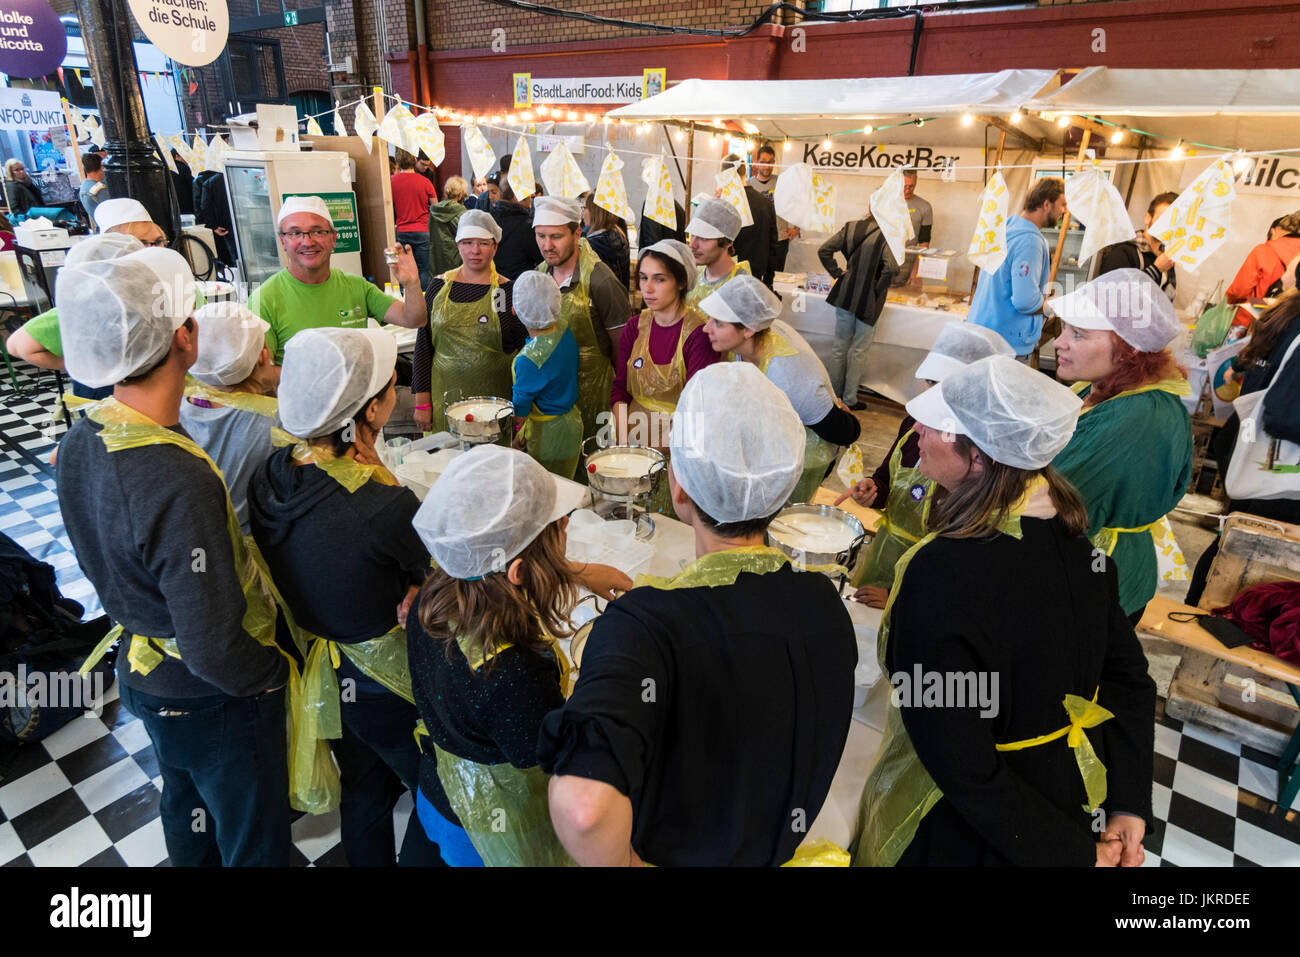 Markthalle 9, Food workshop, Kreuzberg, SO 36, Berlin - Stock Image